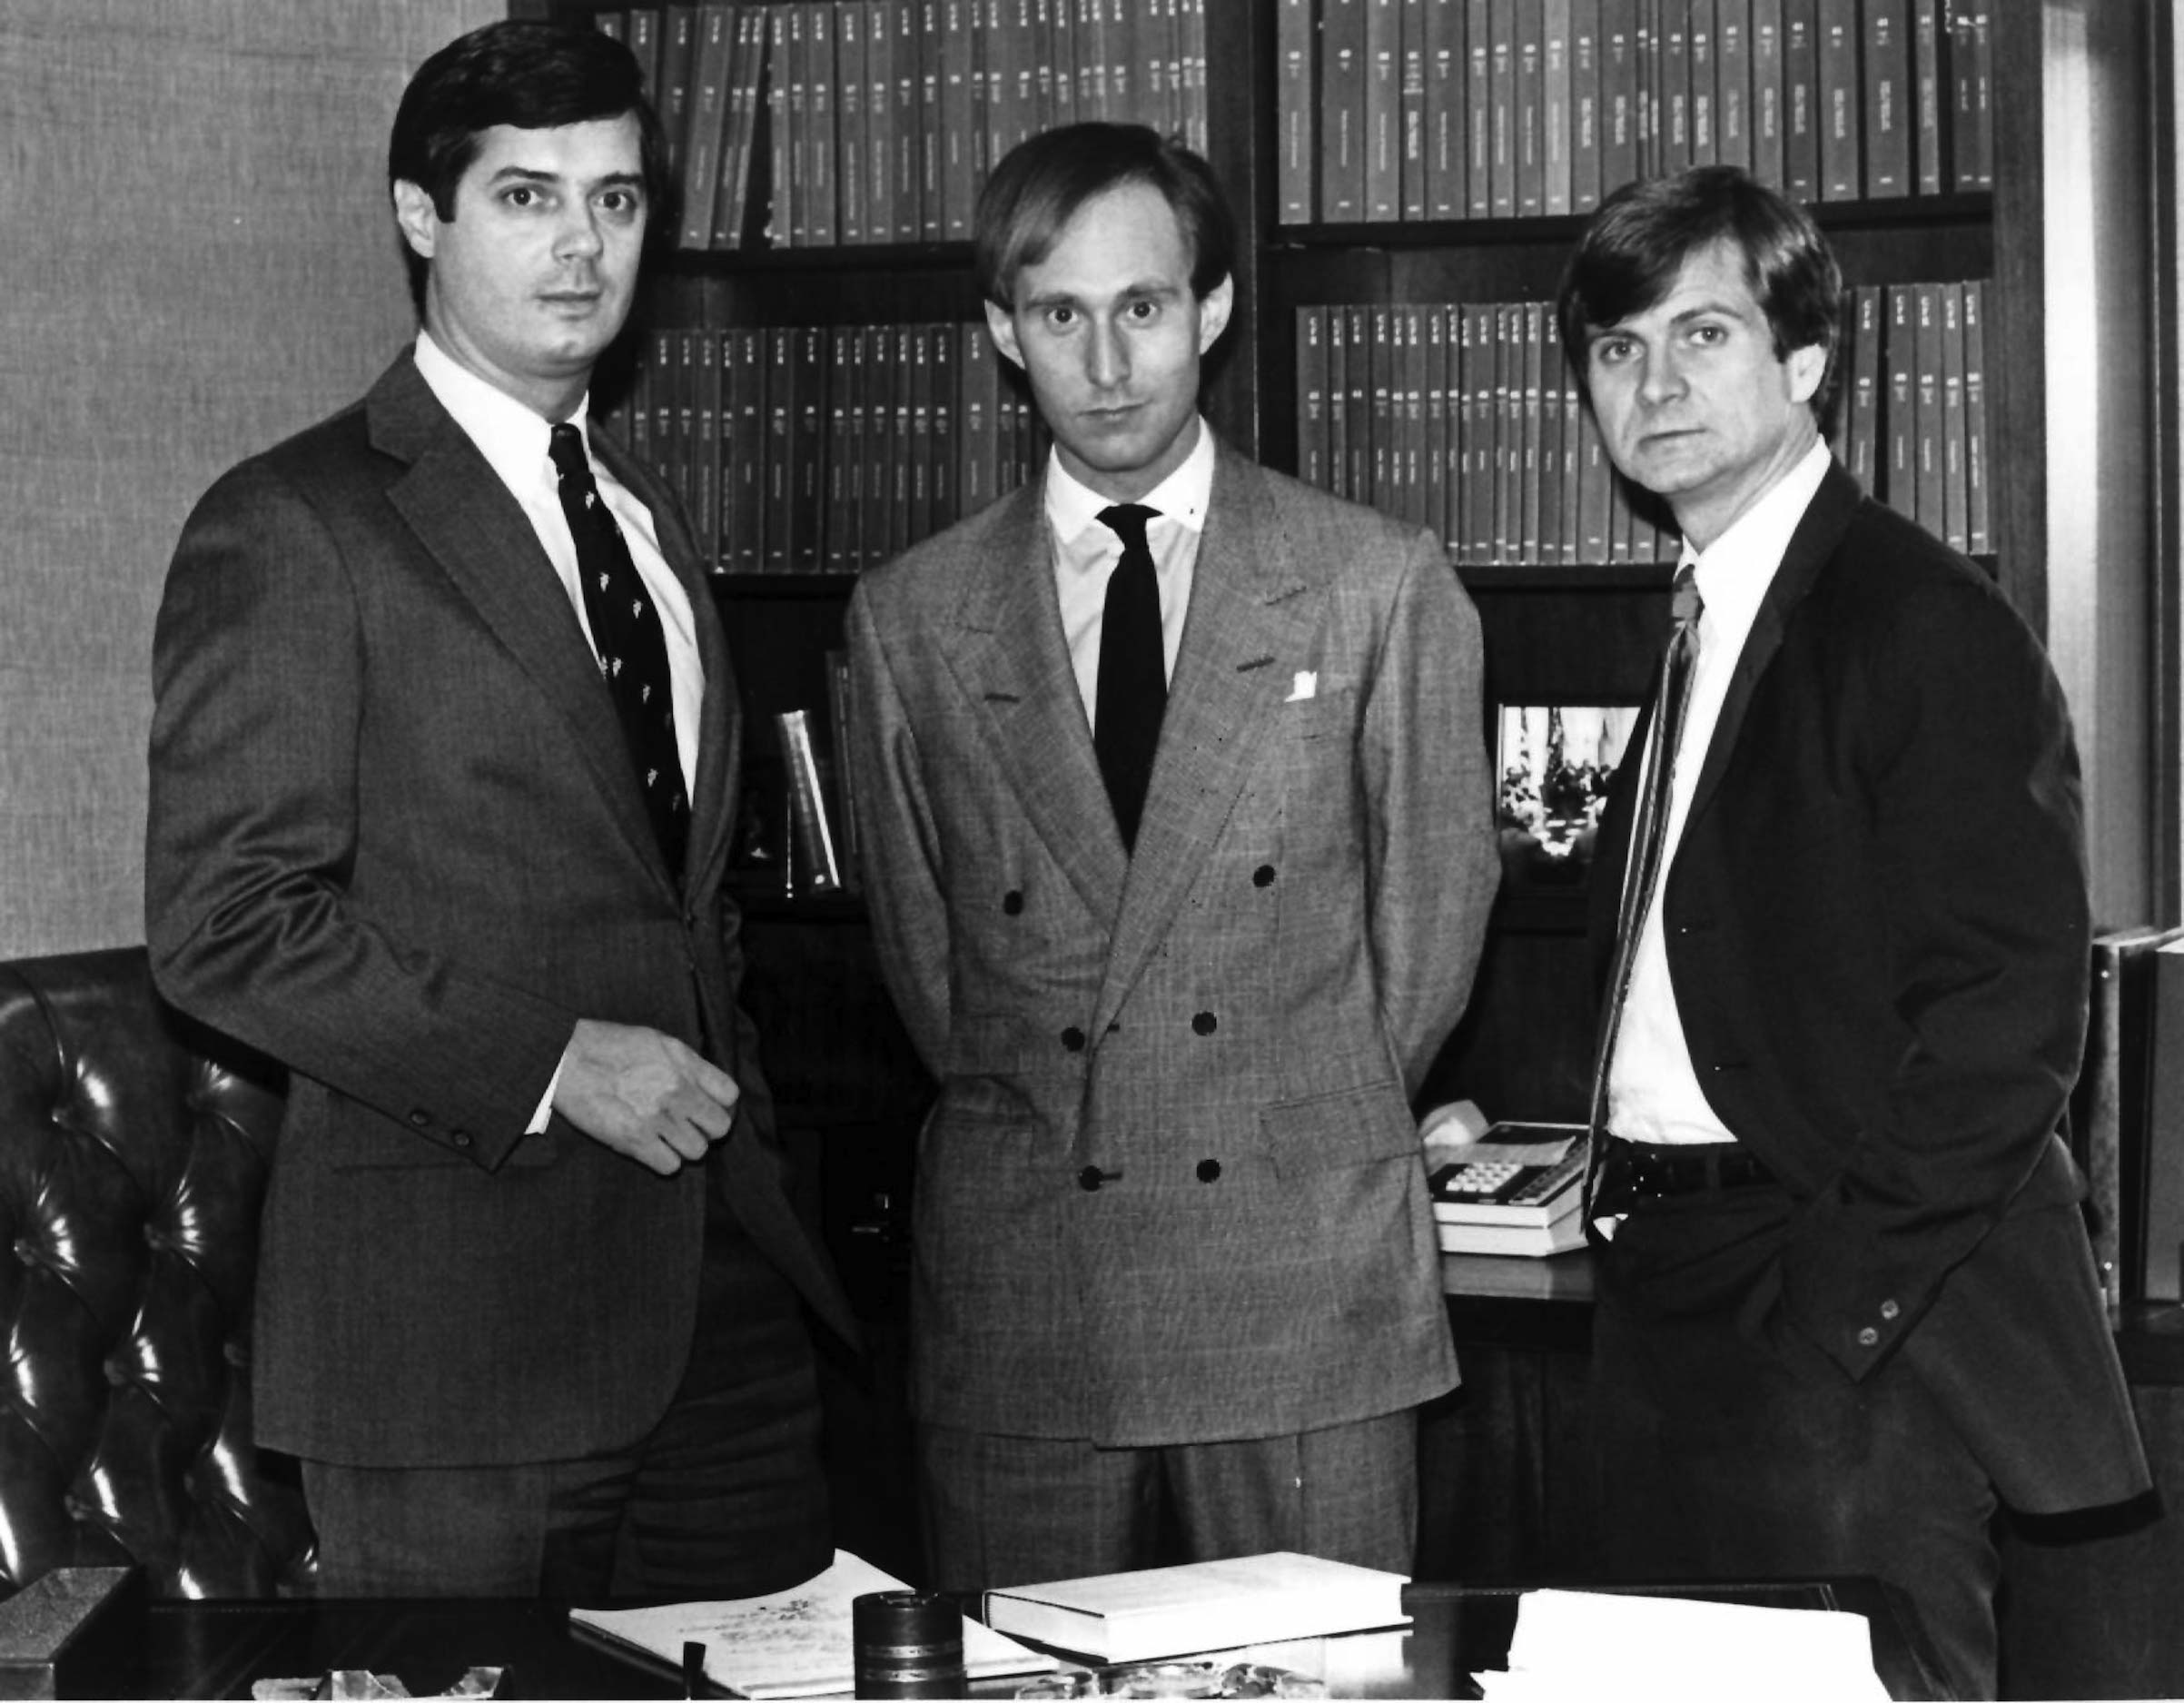 Paul Manafort, Roger Stone and Lee Atwater on March 21, 1985.